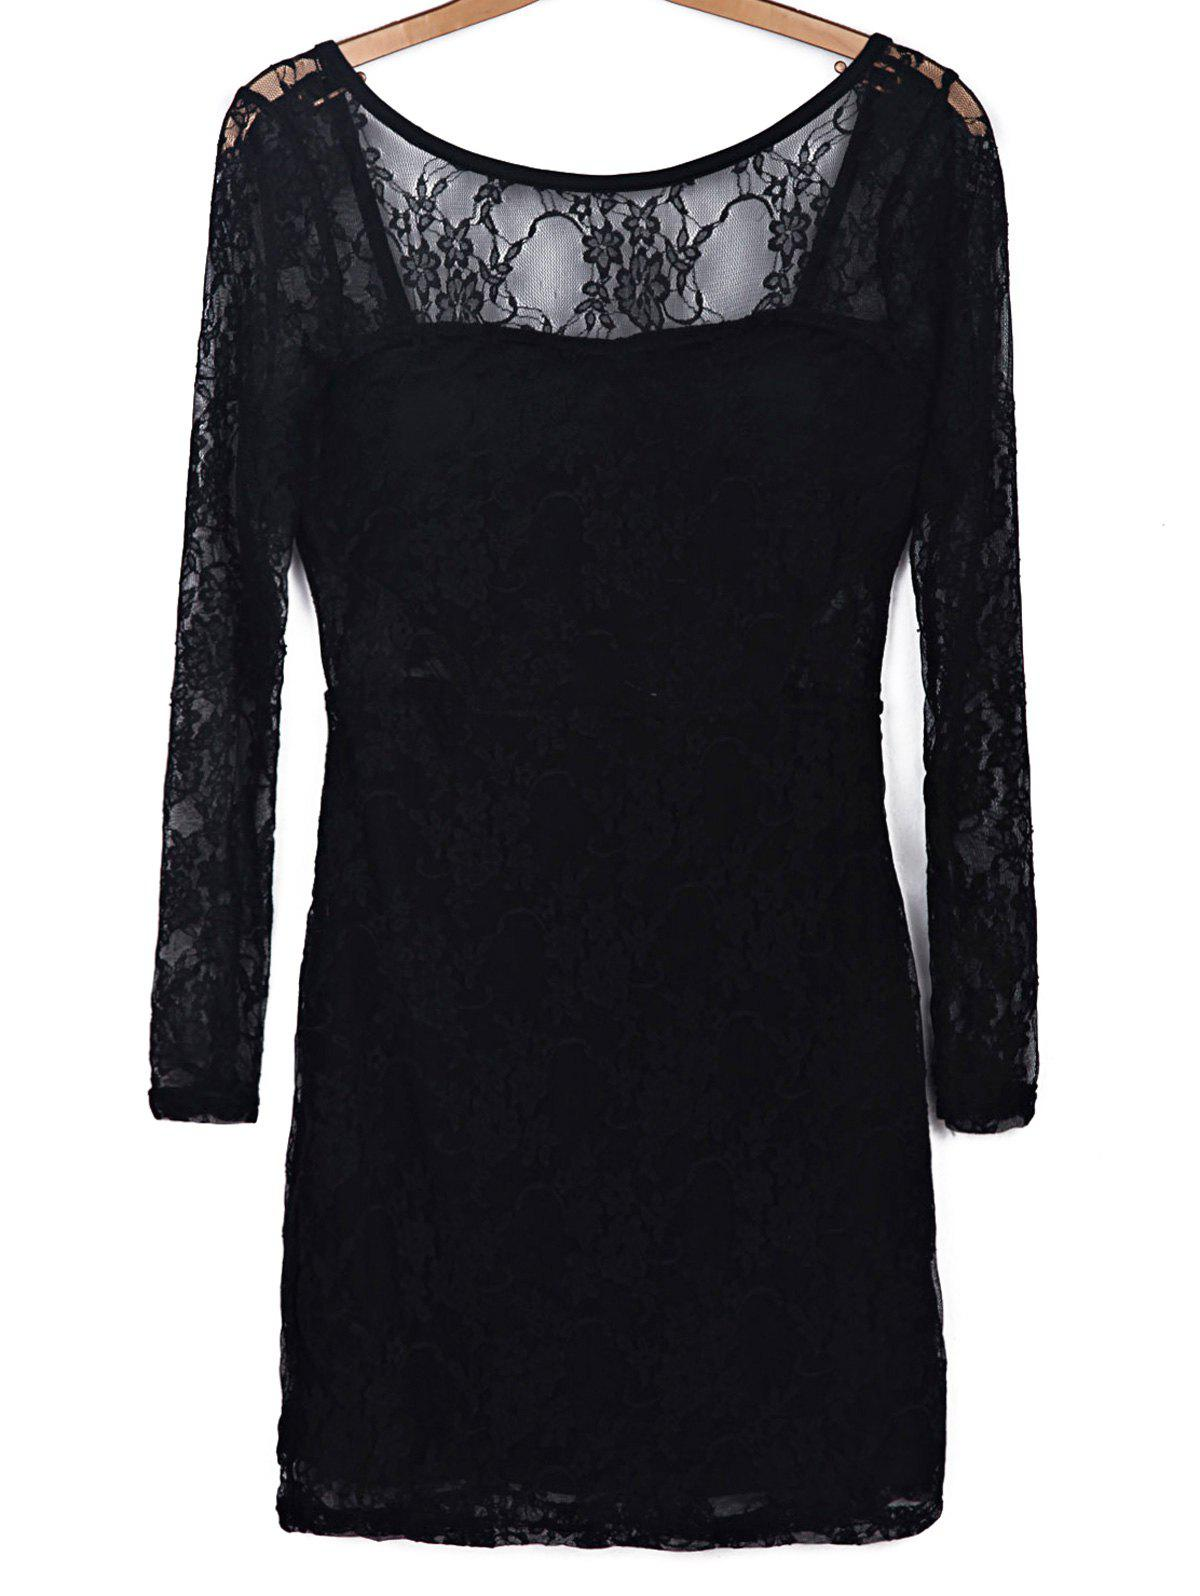 Trendy Black Hollow Out Long Sleeve Backless Bodycon Lace Dress For Women